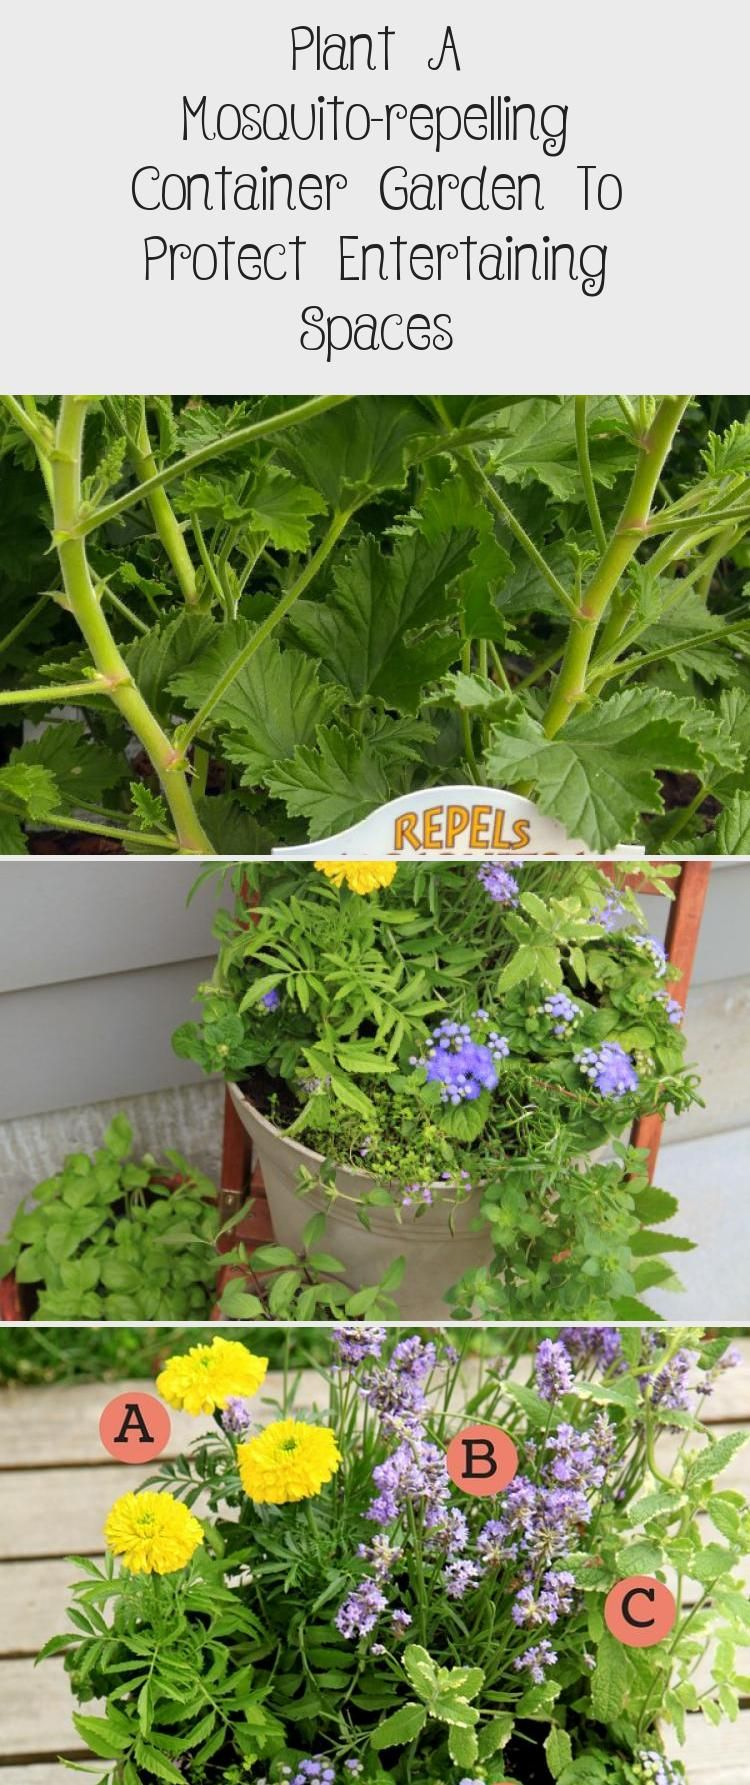 Plant A Mosquito-repelling Container Garden To Protect Entertaining Spaces #mosquitoplants